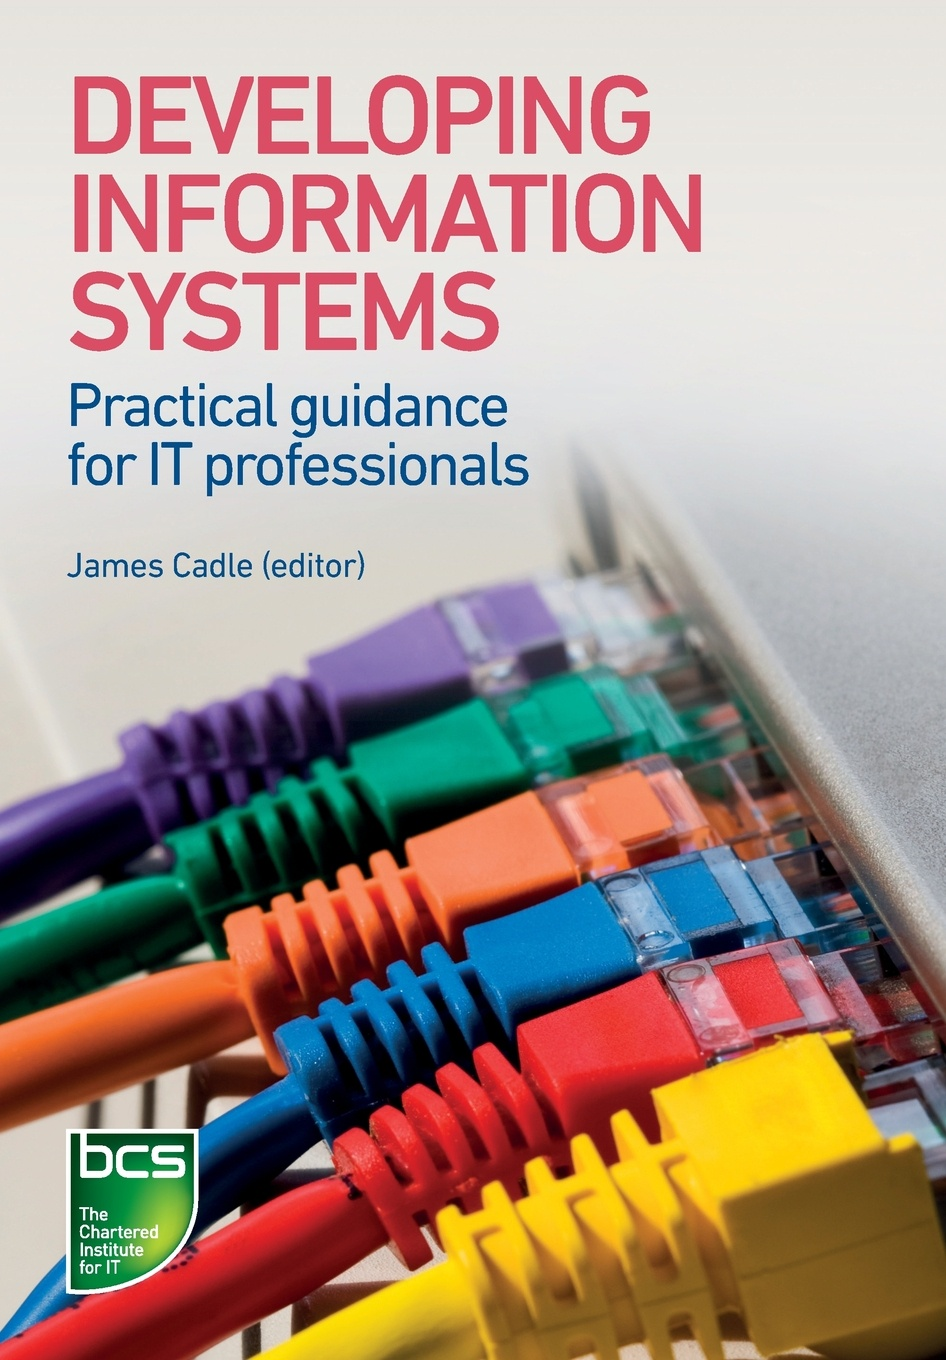 все цены на Tahir Ahmed, Julian Cox, Lynda Girvan Developing Information Systems. Practical Guidance for It Professionals онлайн